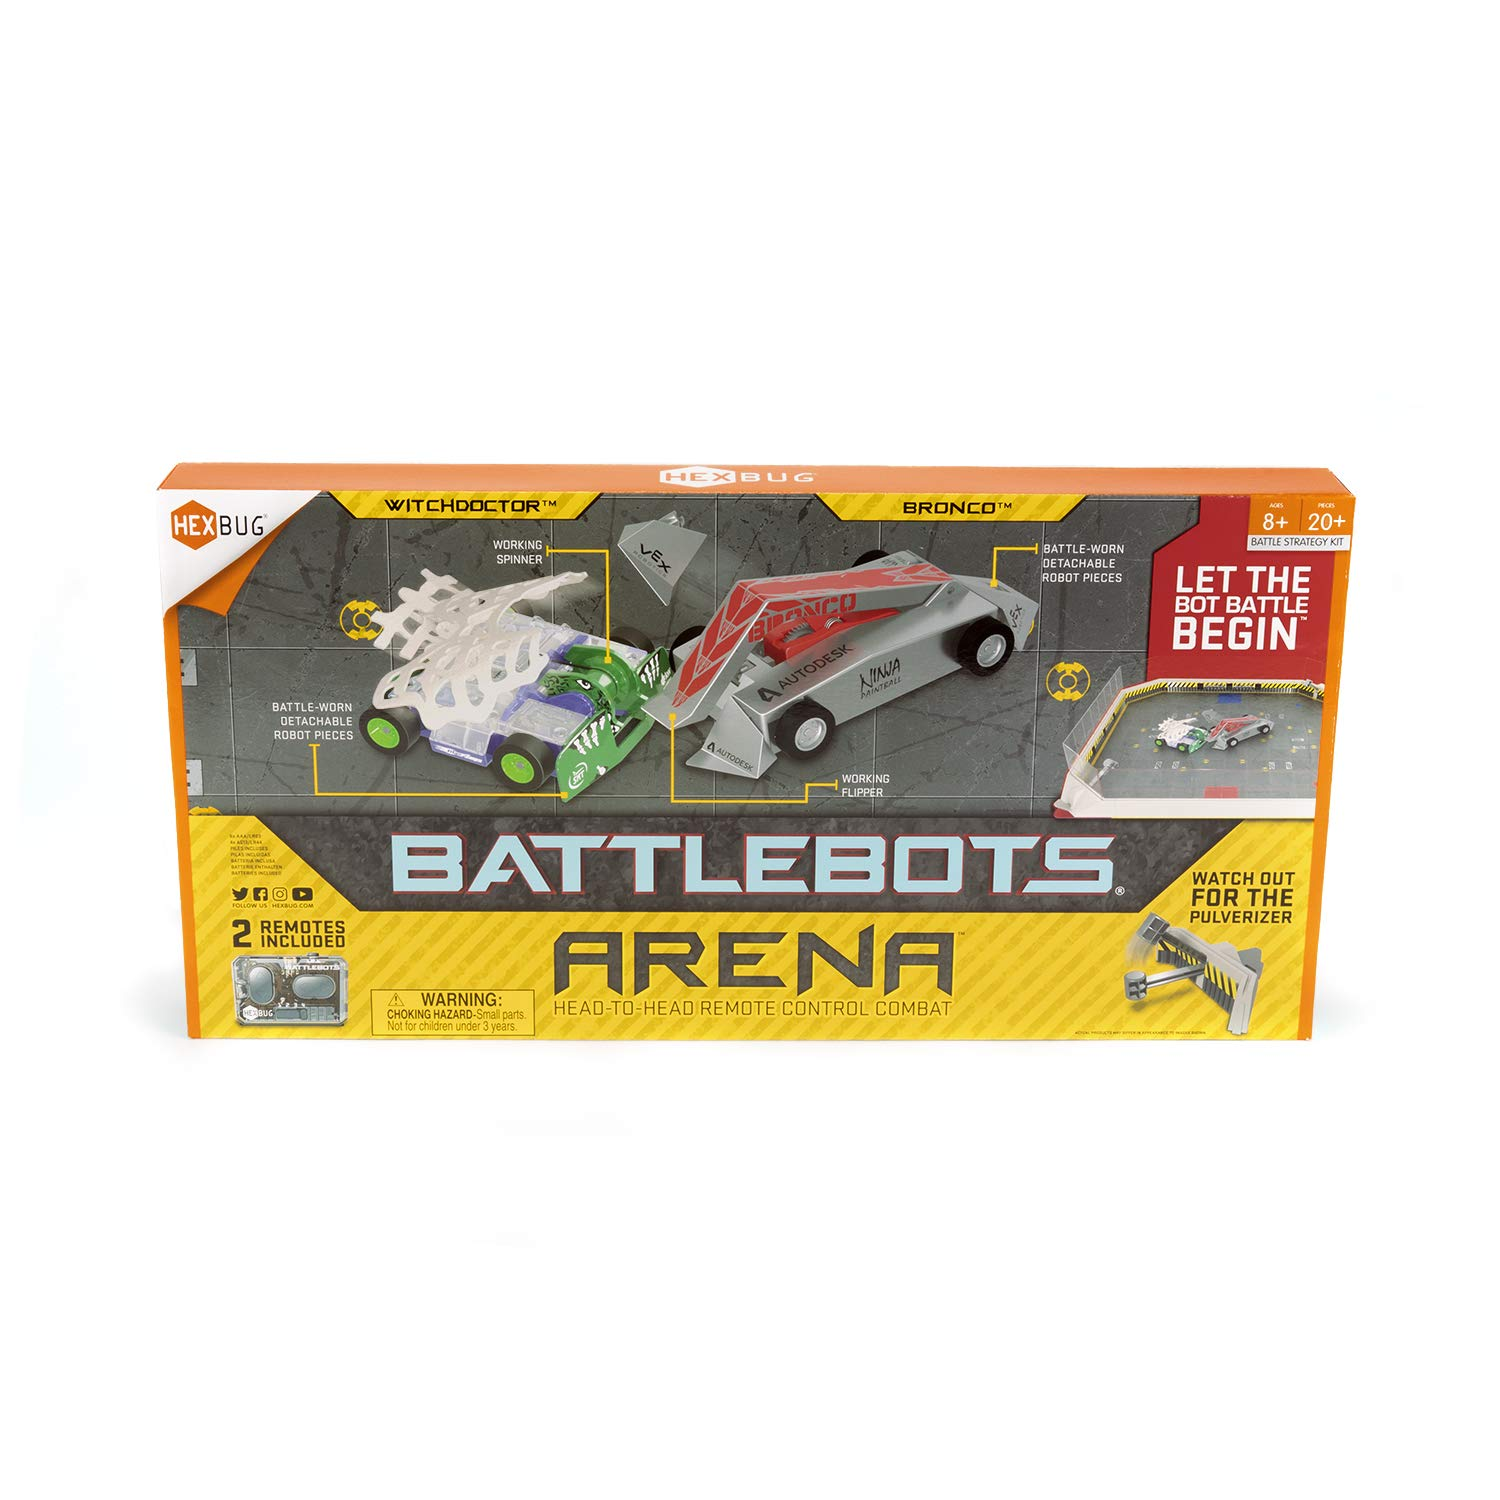 HEXBUG BattleBots Arena (Bronco and Witch Doctor)